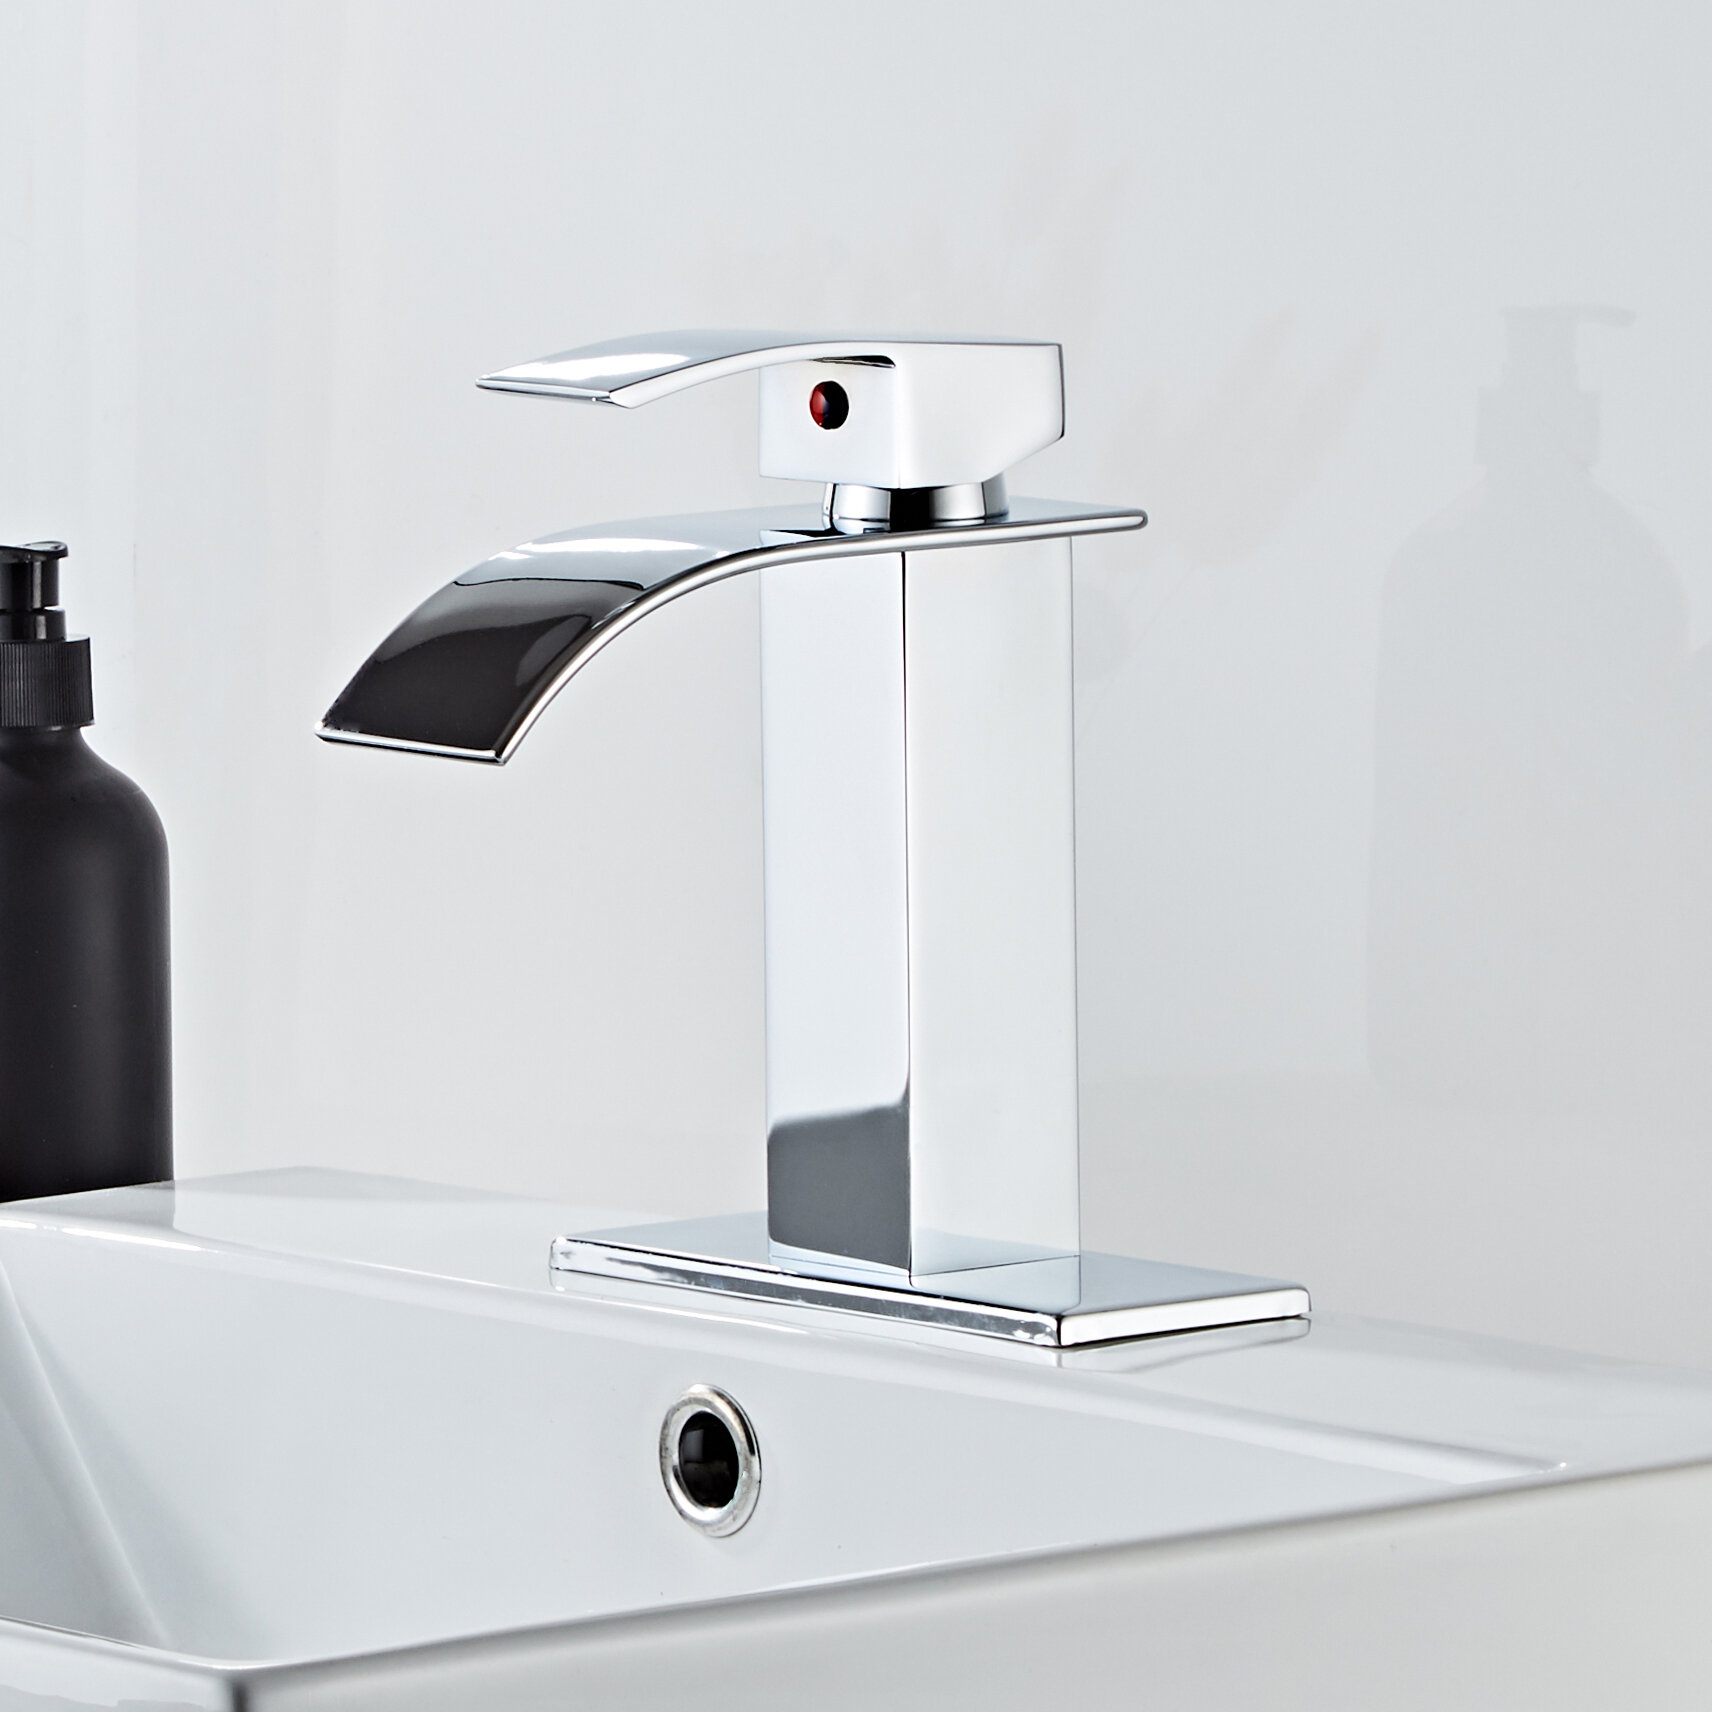 Deervalley Single Hole Bathroom Faucet Reviews Wayfair